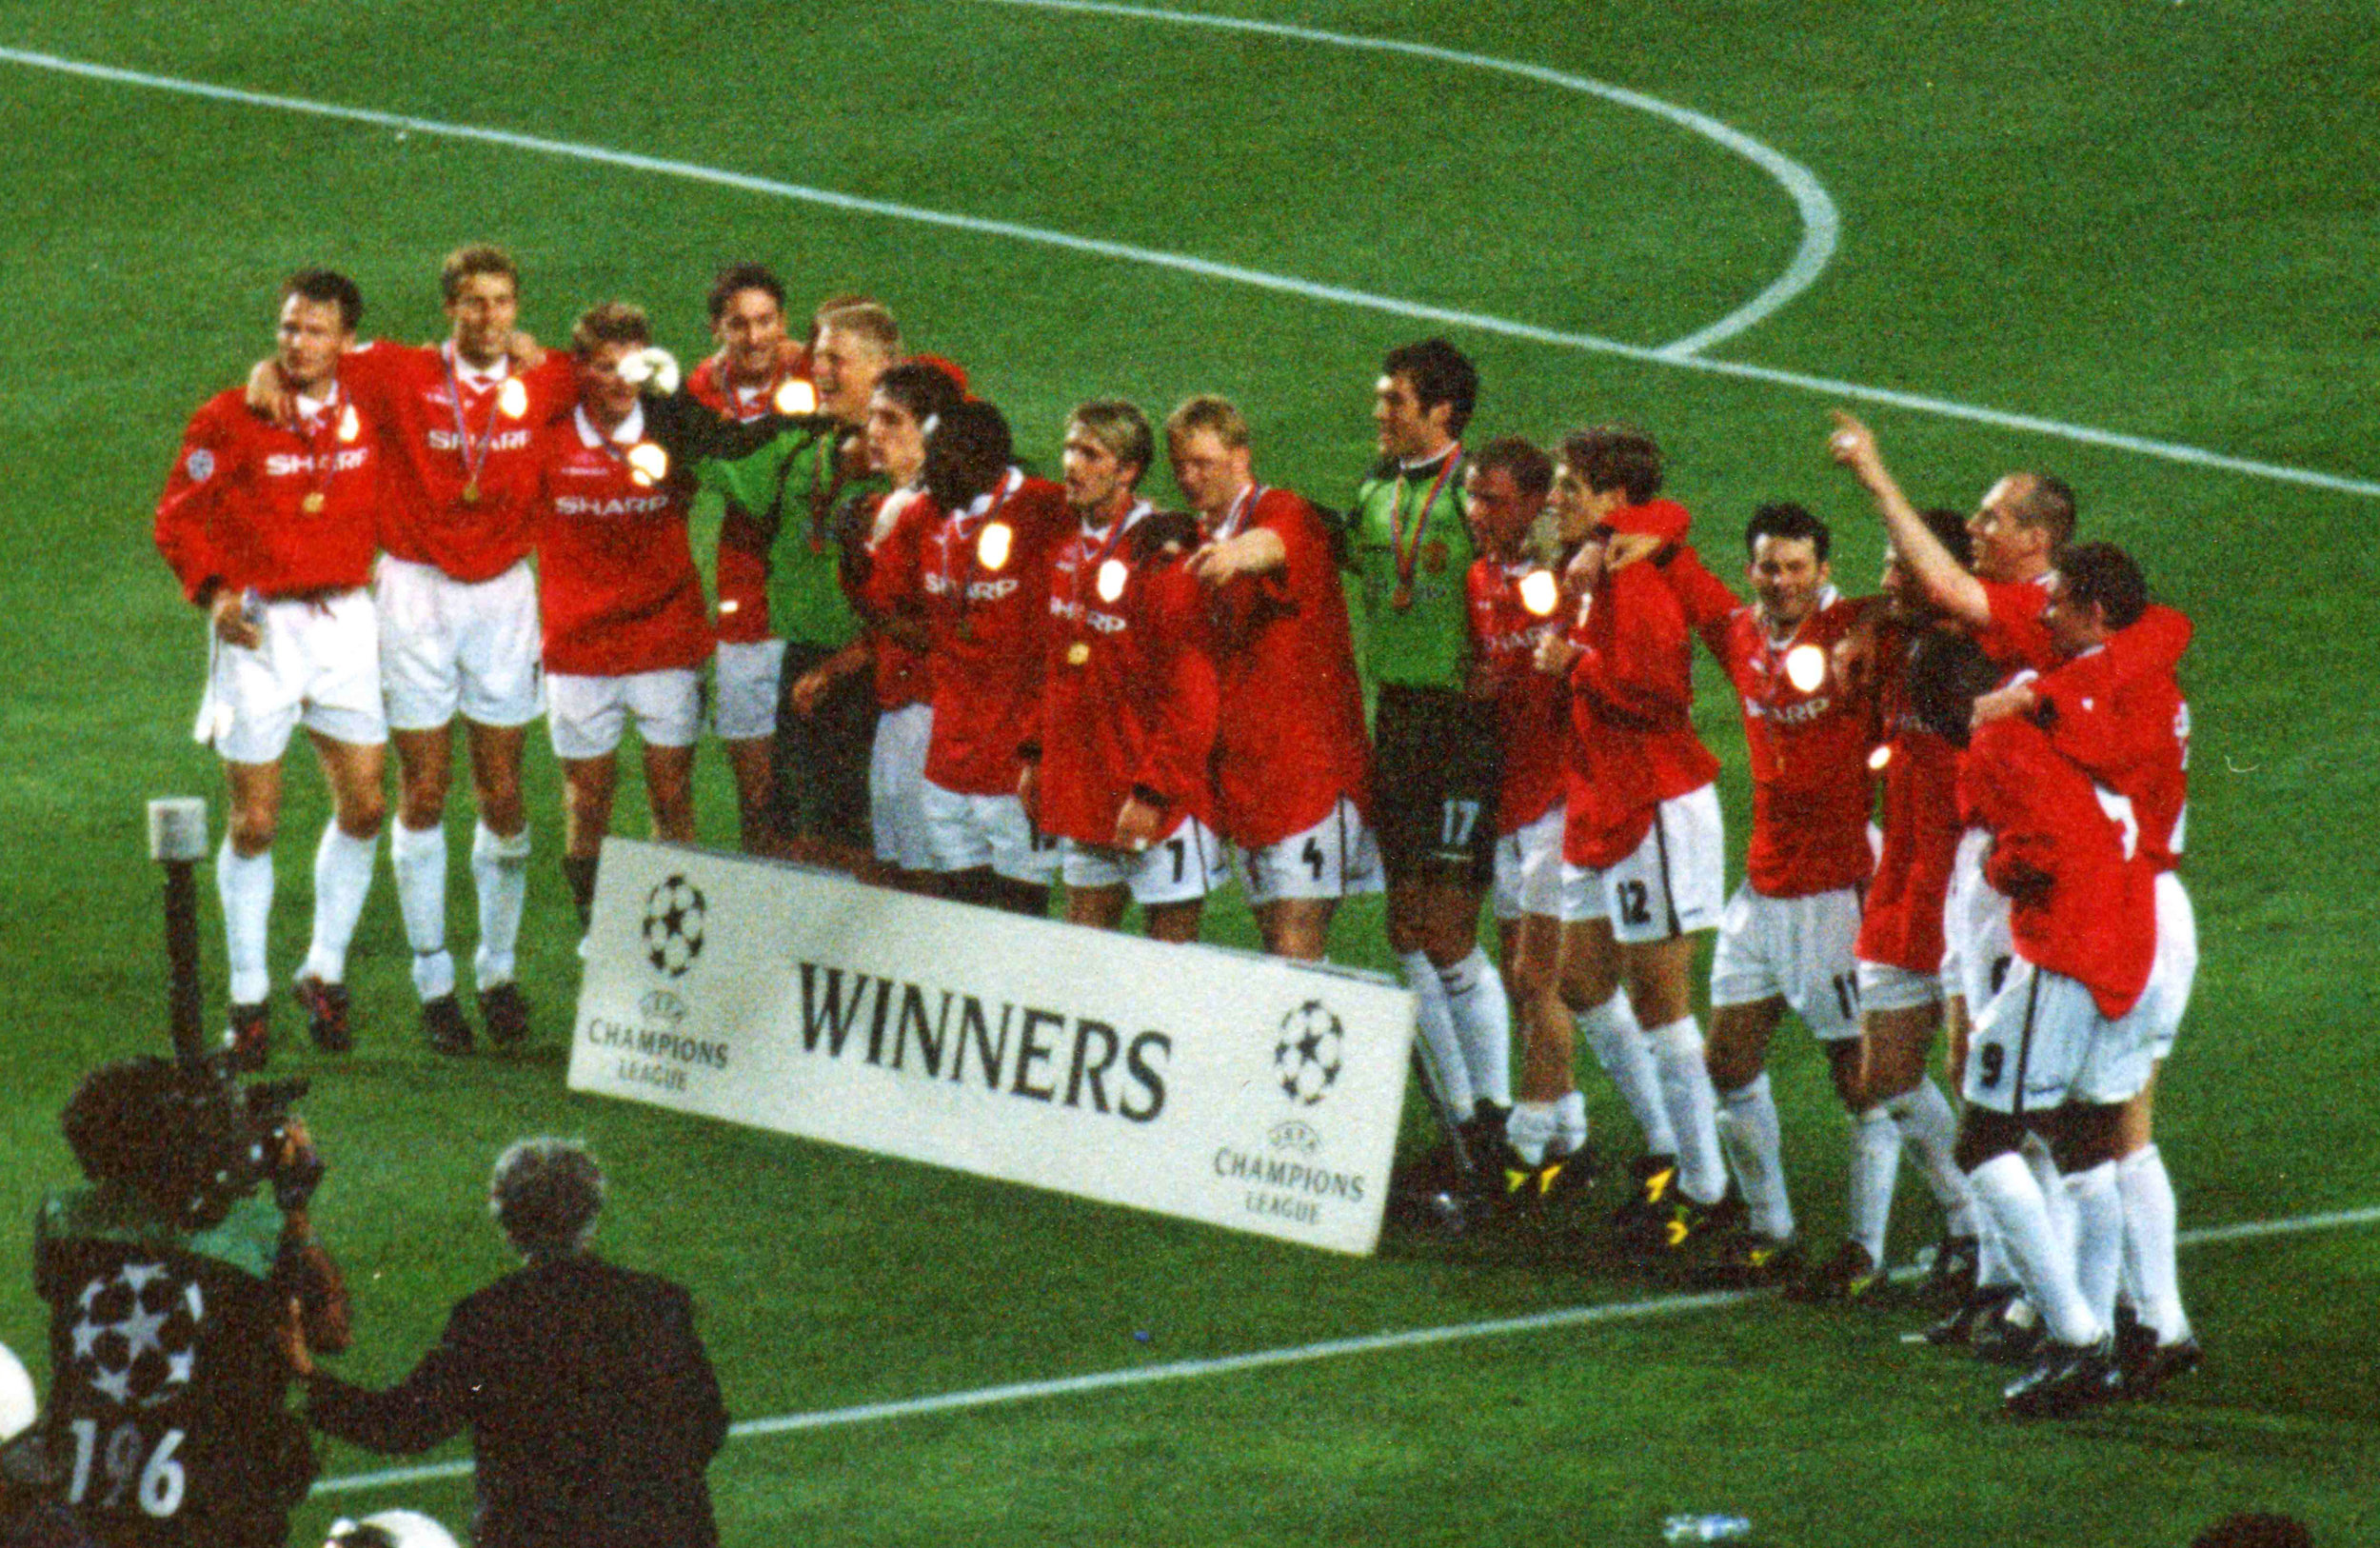 1999_UEFA_Champions_League_celebration_(edited).jpg